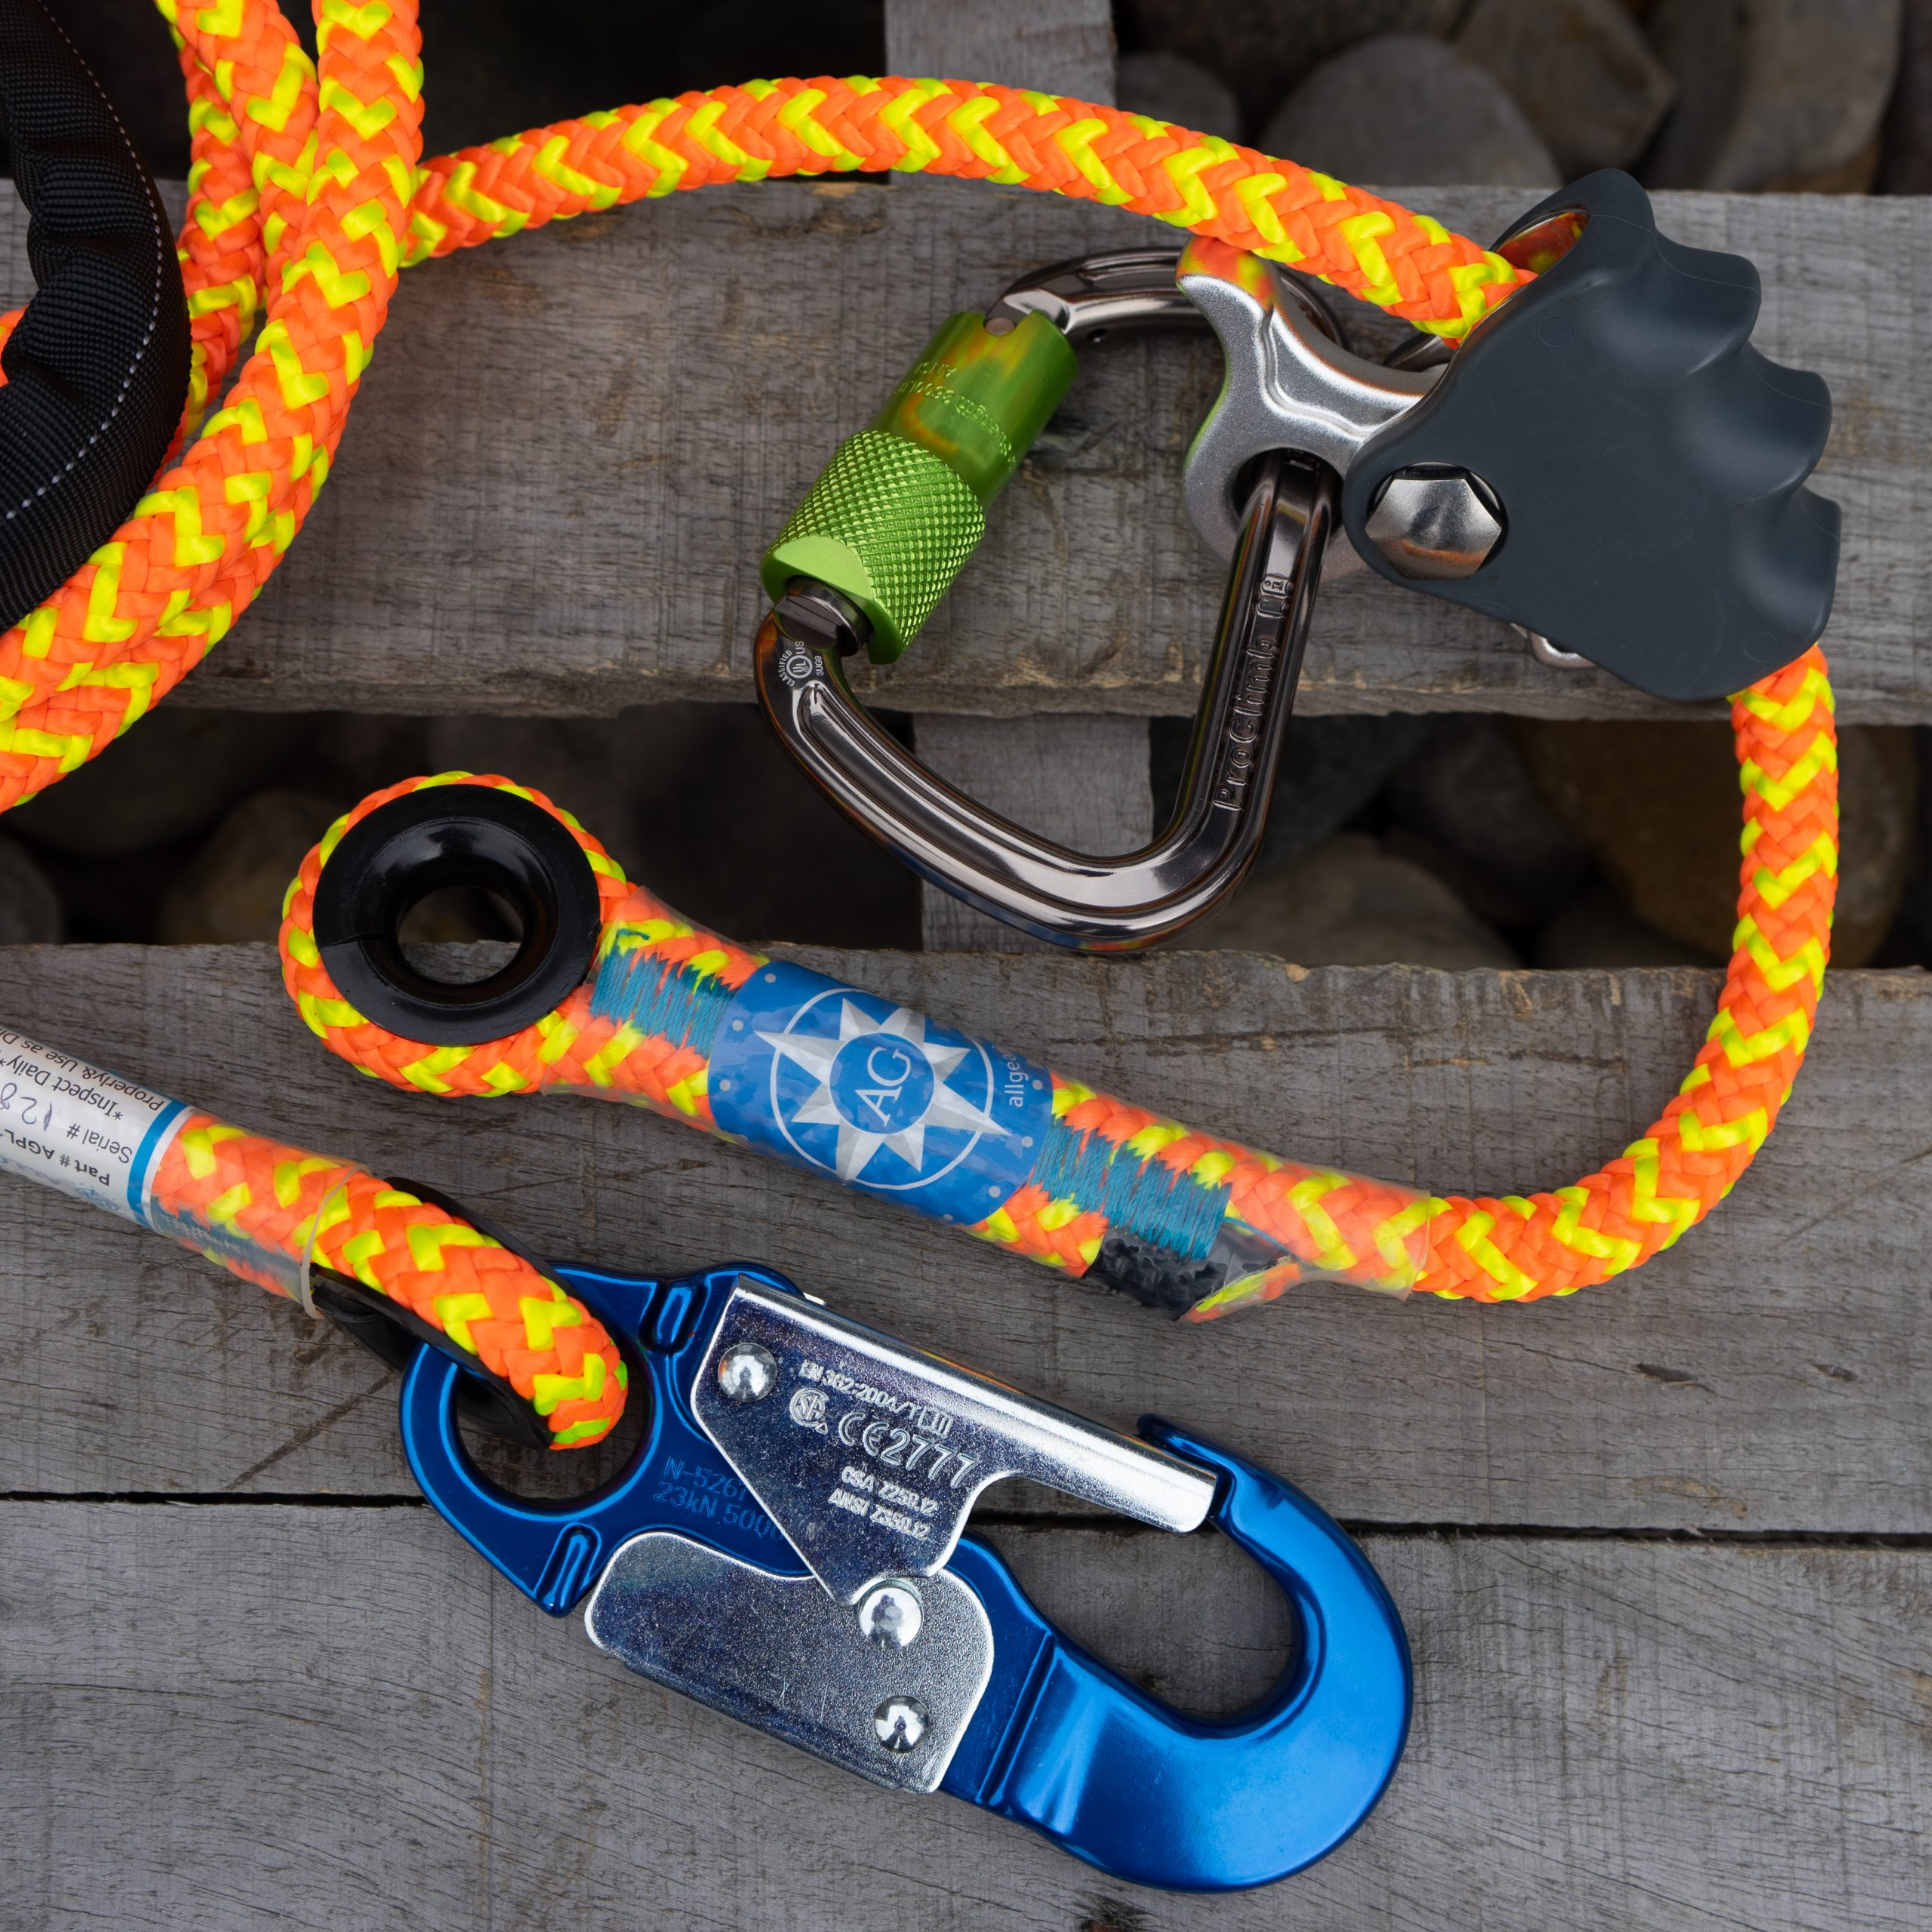 Positioning Lanyard - Safetylite